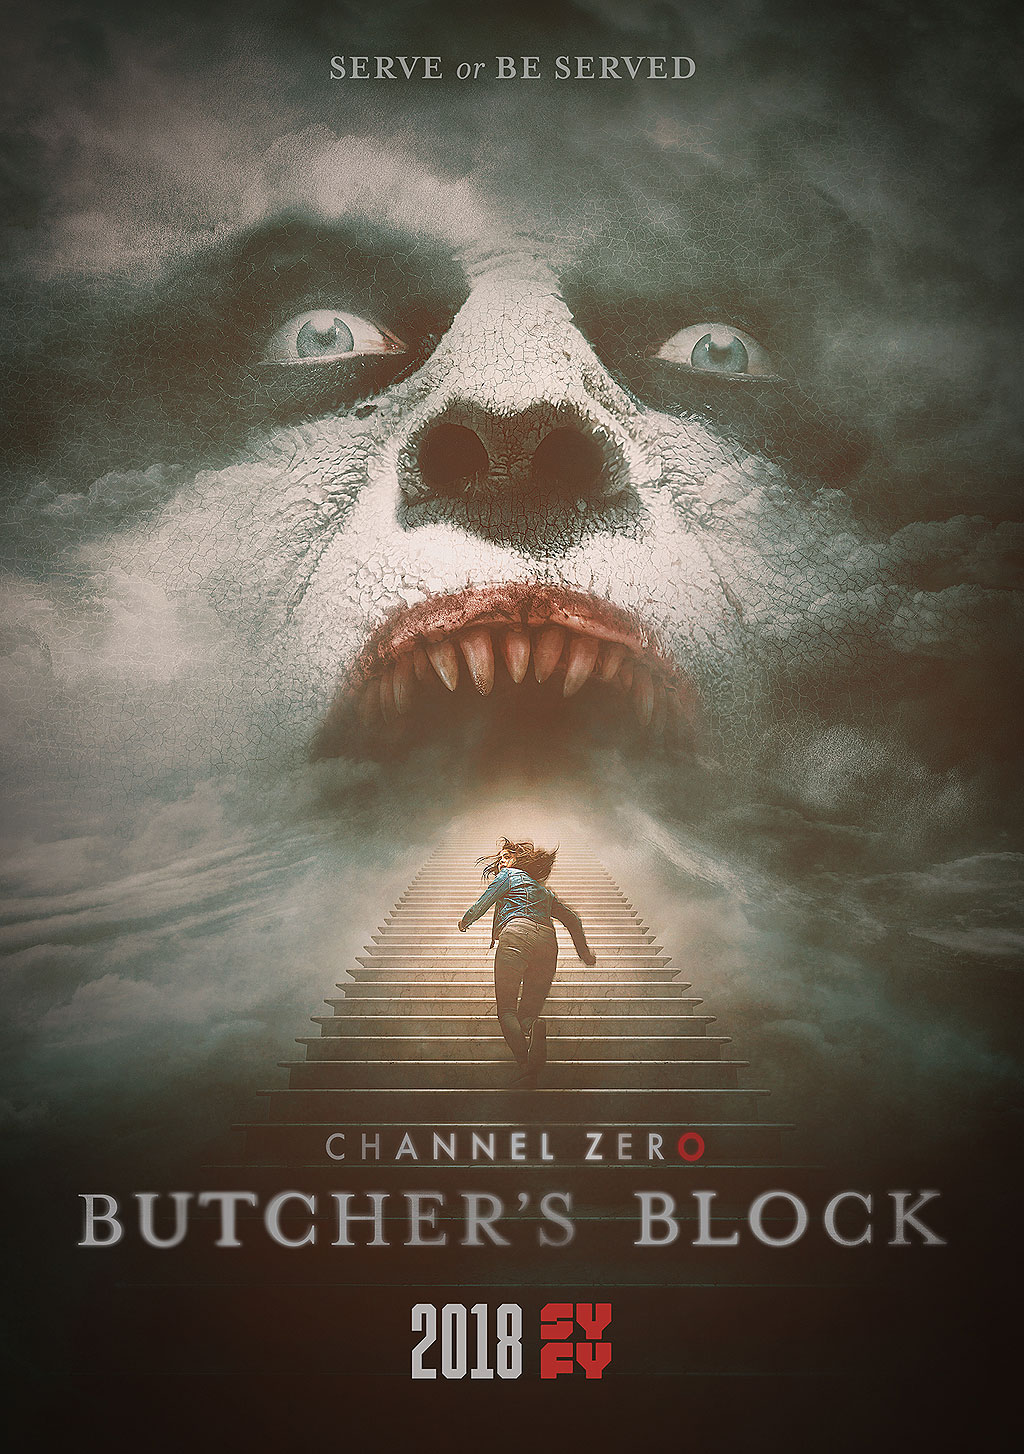 Affiche de Channel Zero : The Butcher's Block